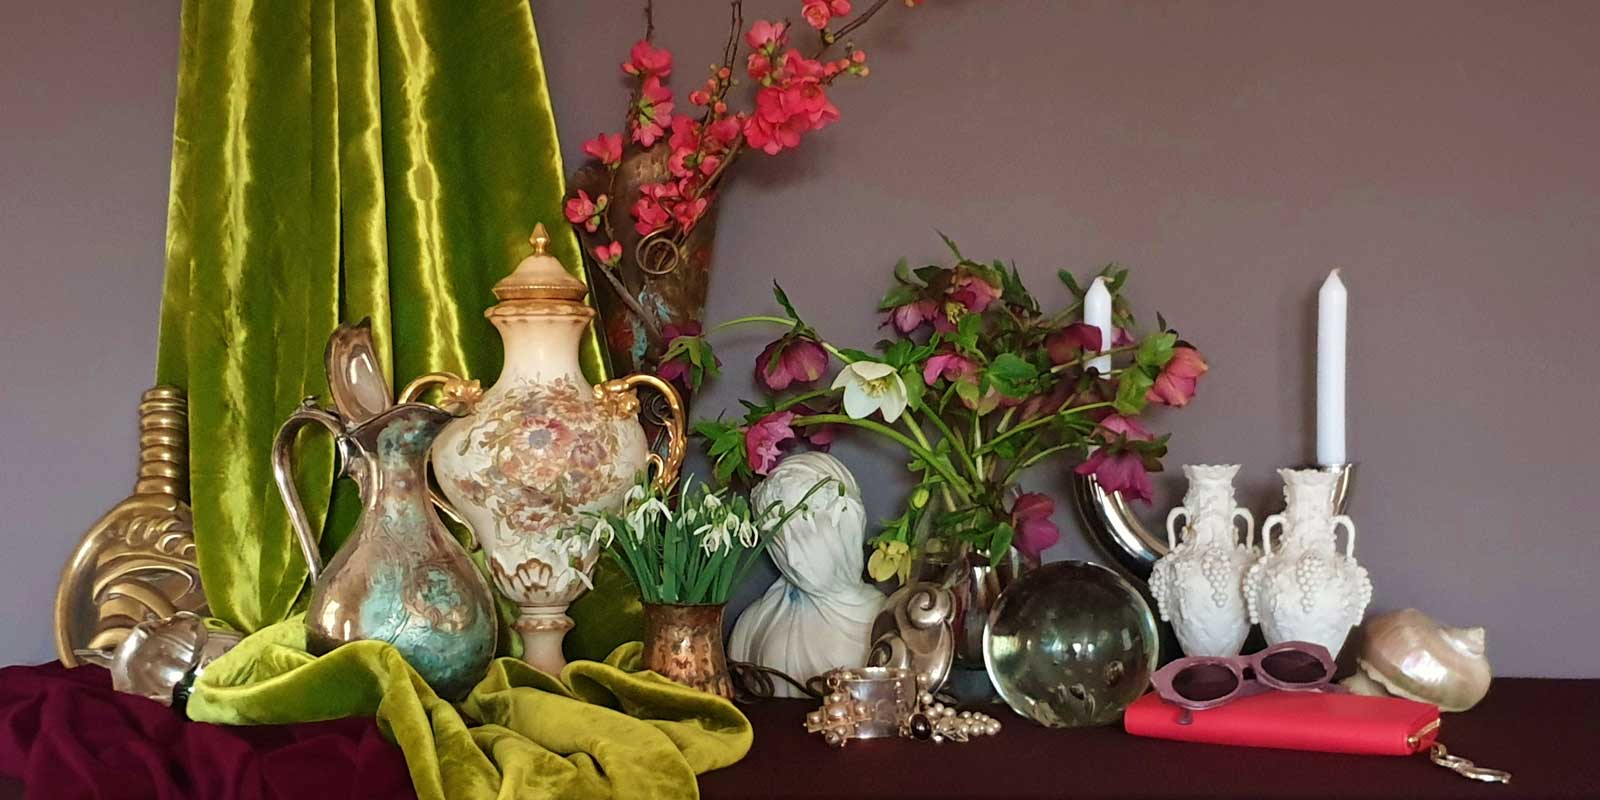 lime green silk velvet and treasured object which are inspiration to UK floral artist Sarah Caswell in a scene of baroque exuberant luxury and abundance